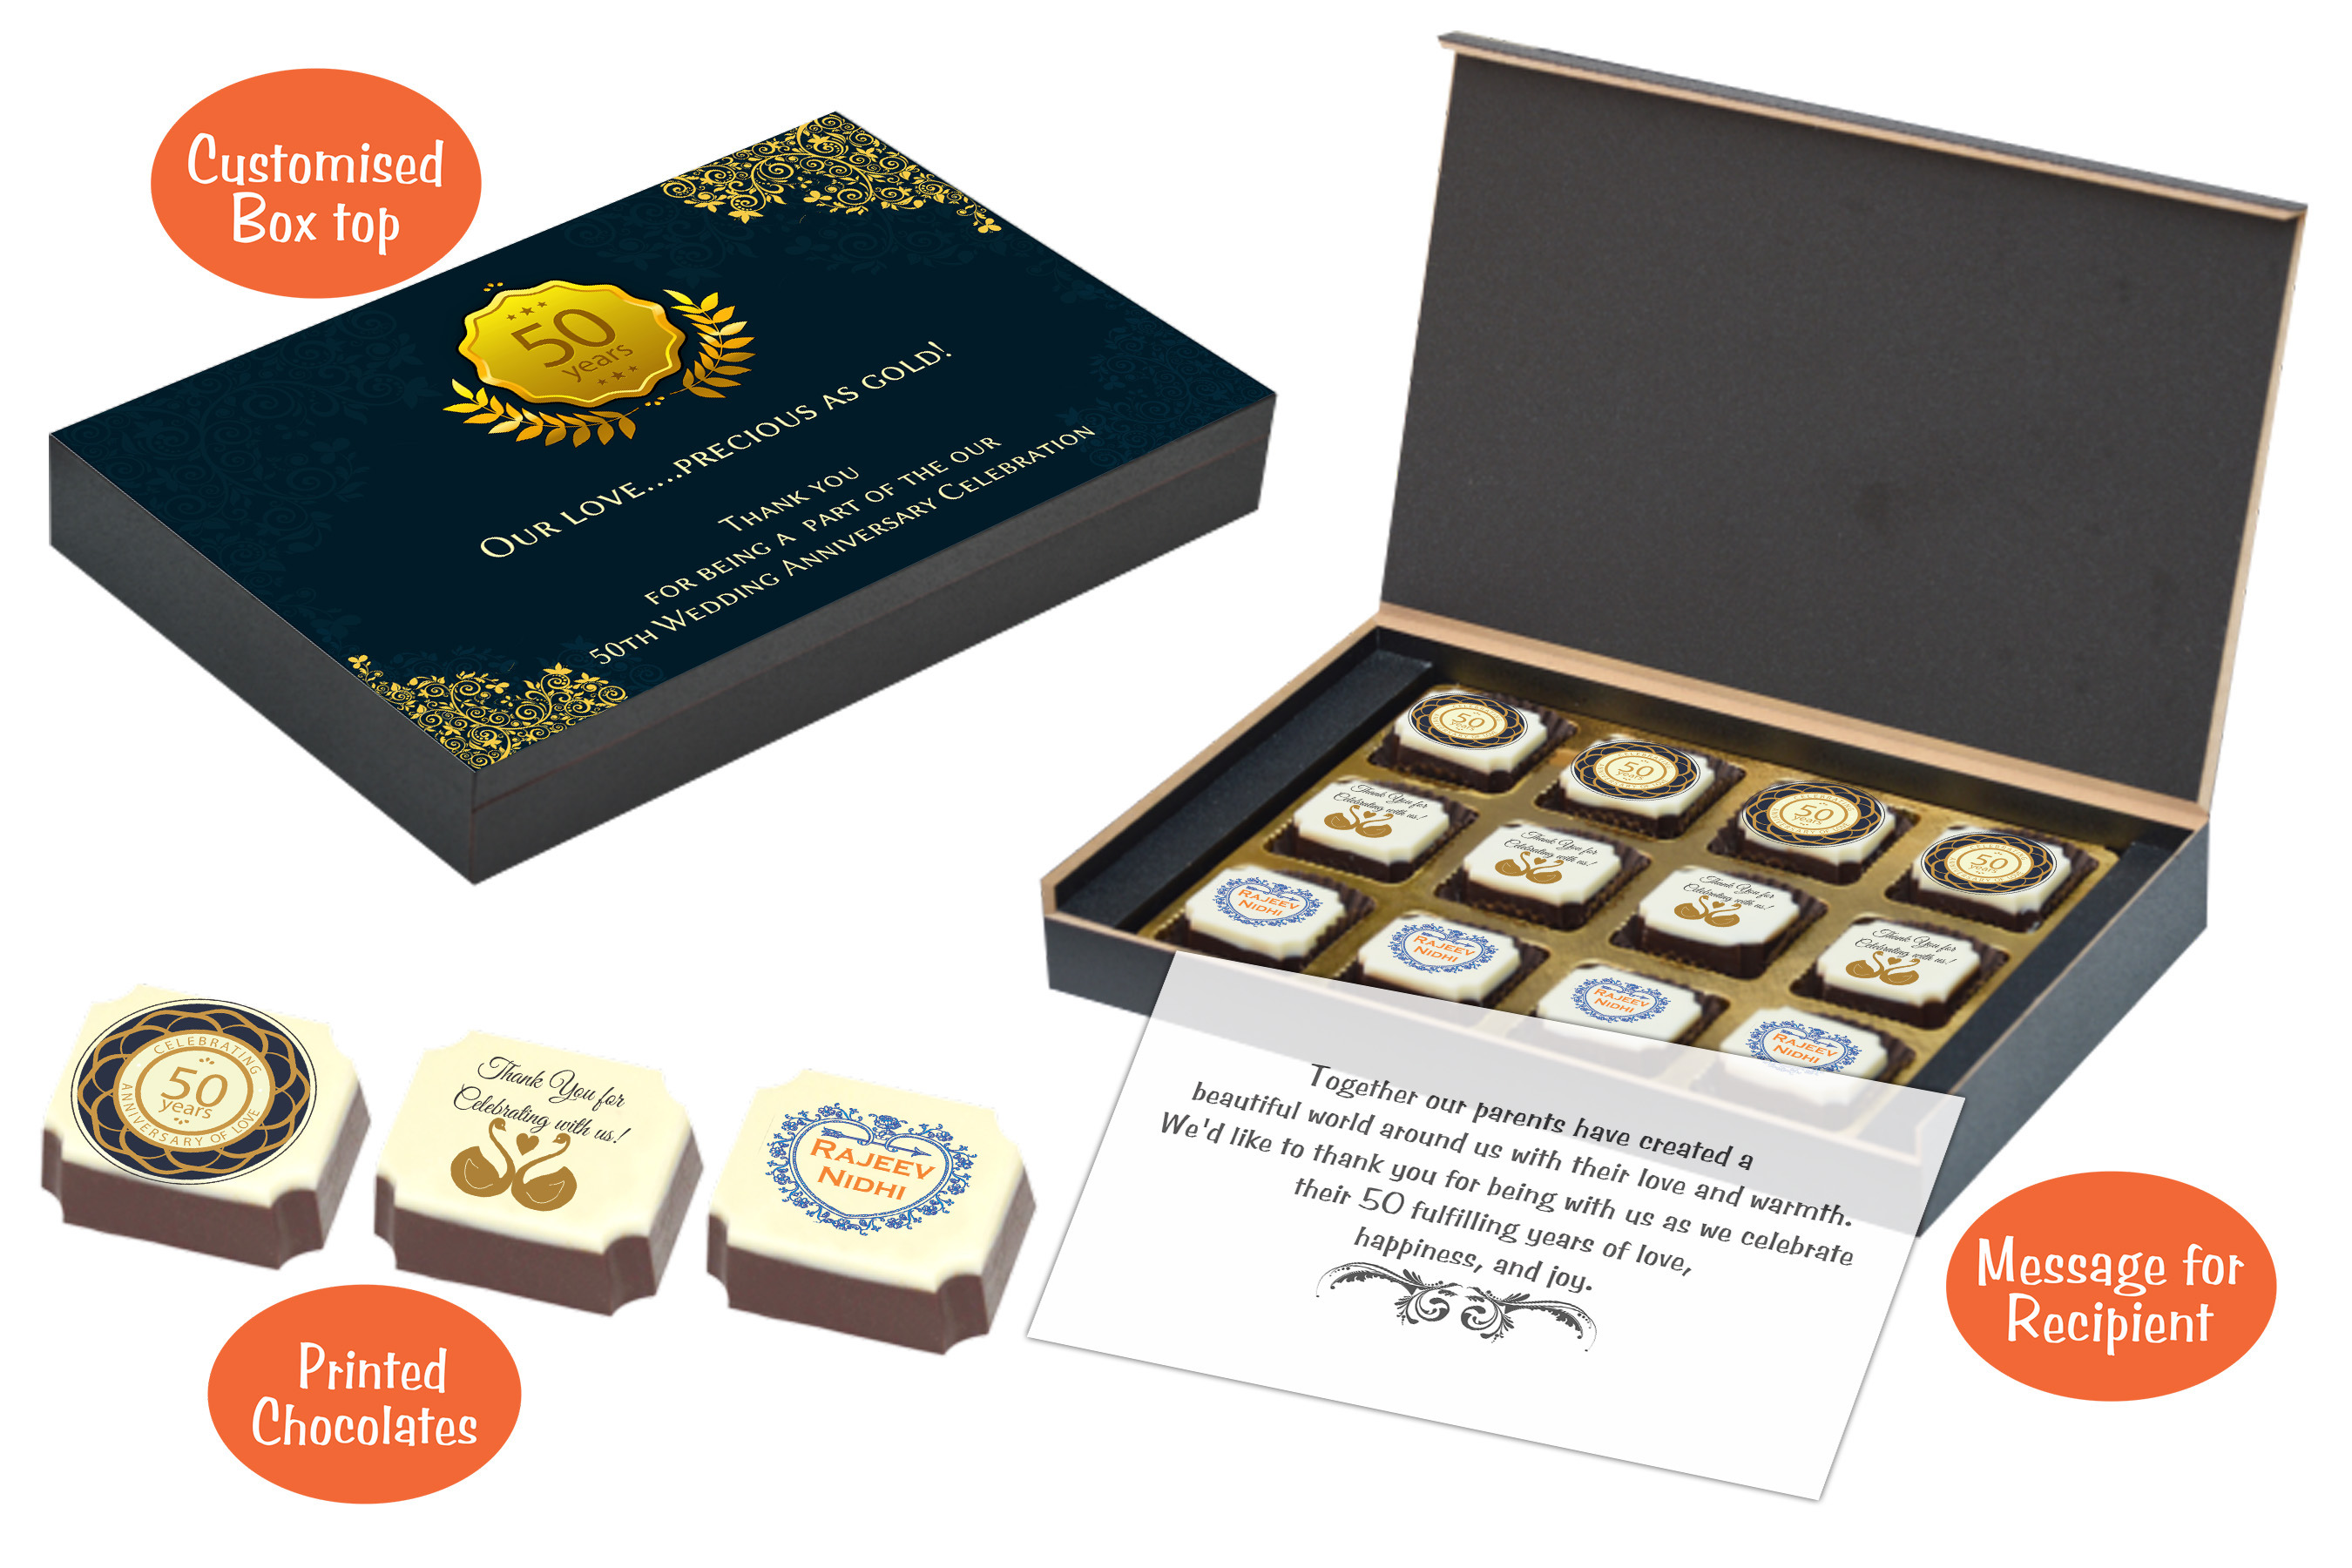 But One Needs To Remember Thank The Guests Who Made Celebration With Special Return Gifts ChocoCrafts Customized Chocolate Boxes Are A